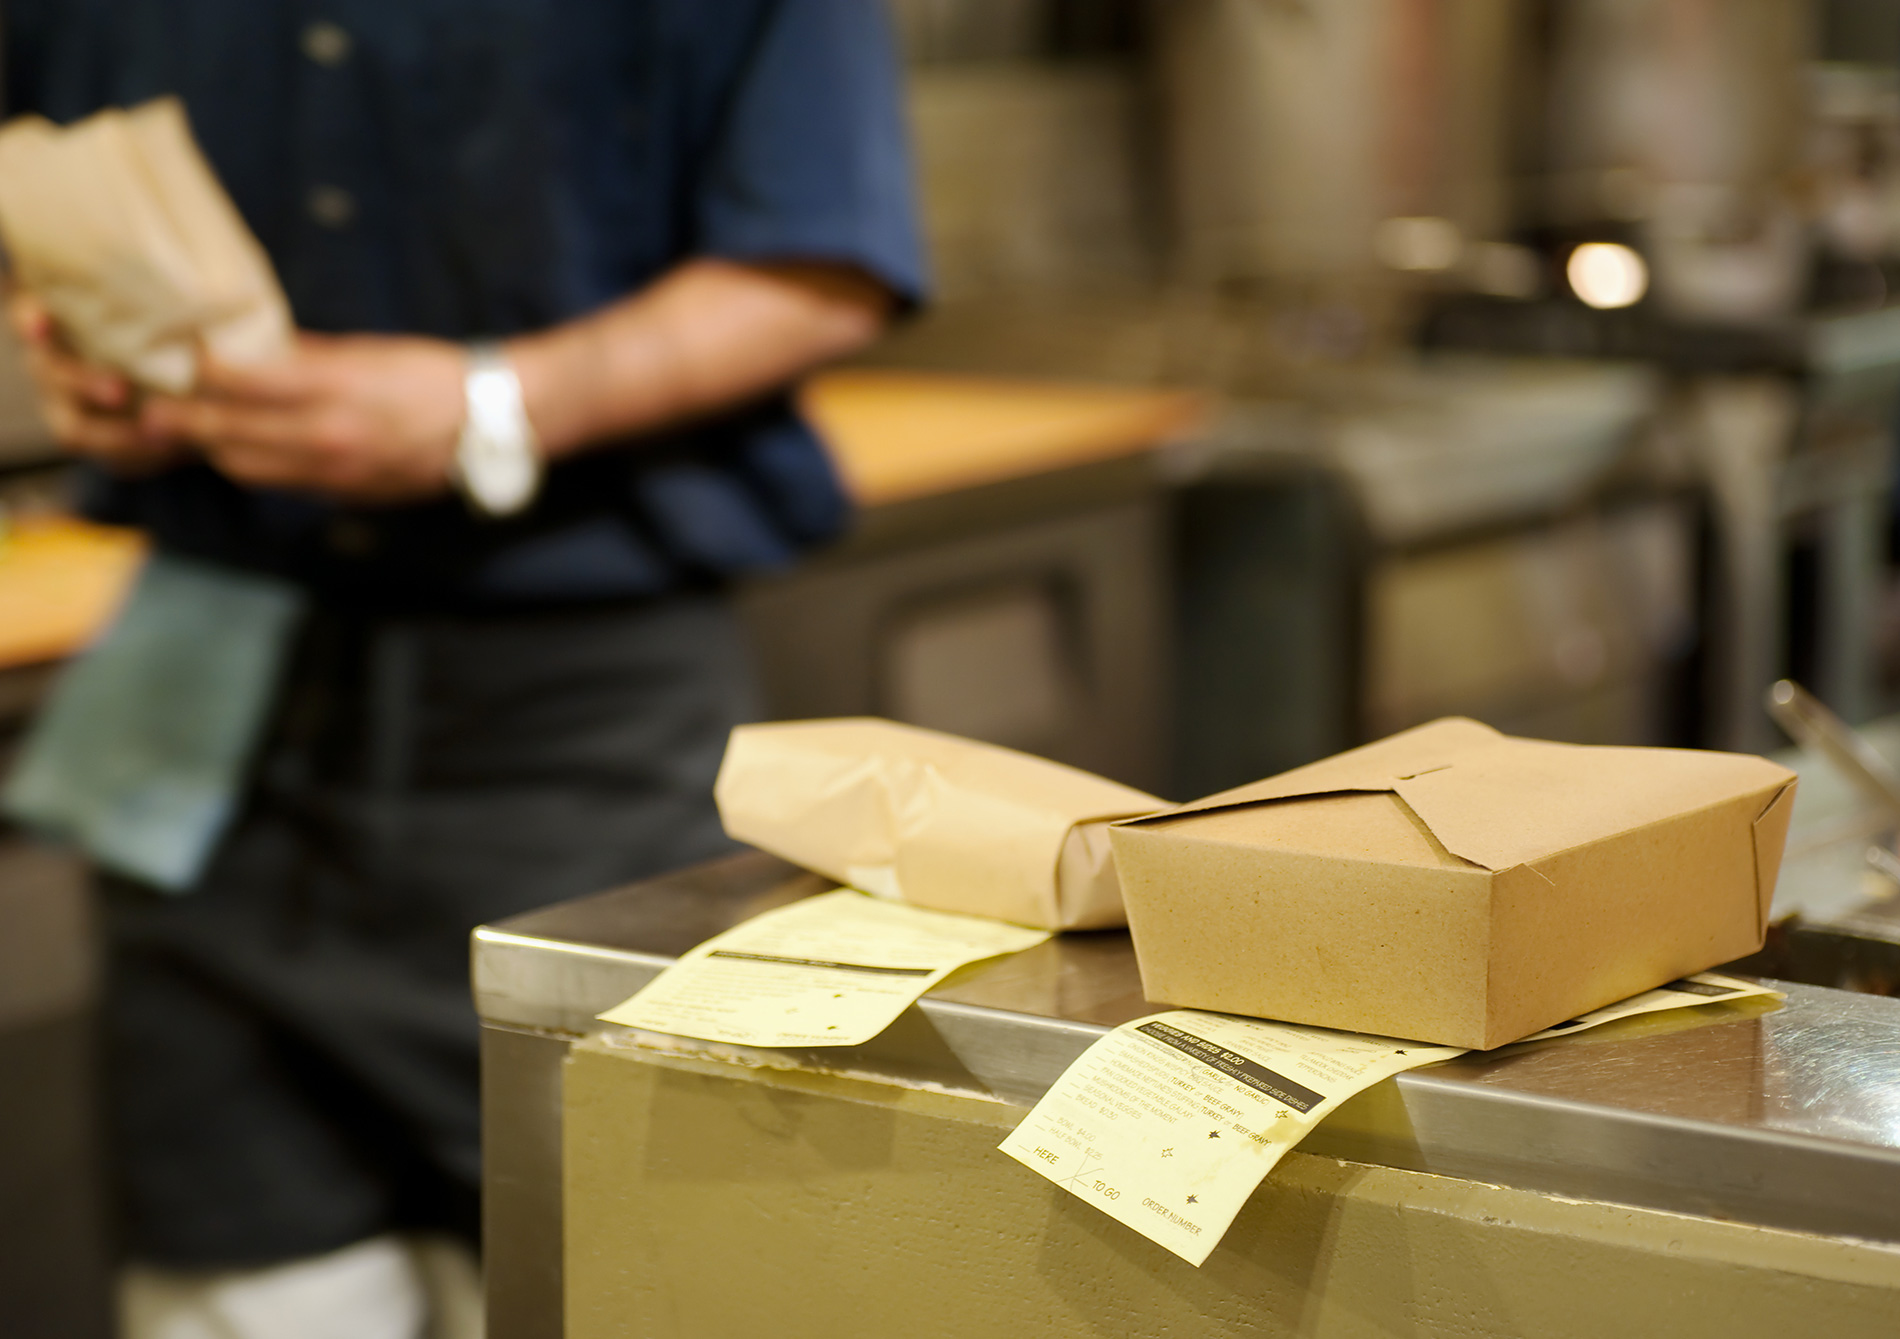 waiter prepares online food order for takeout